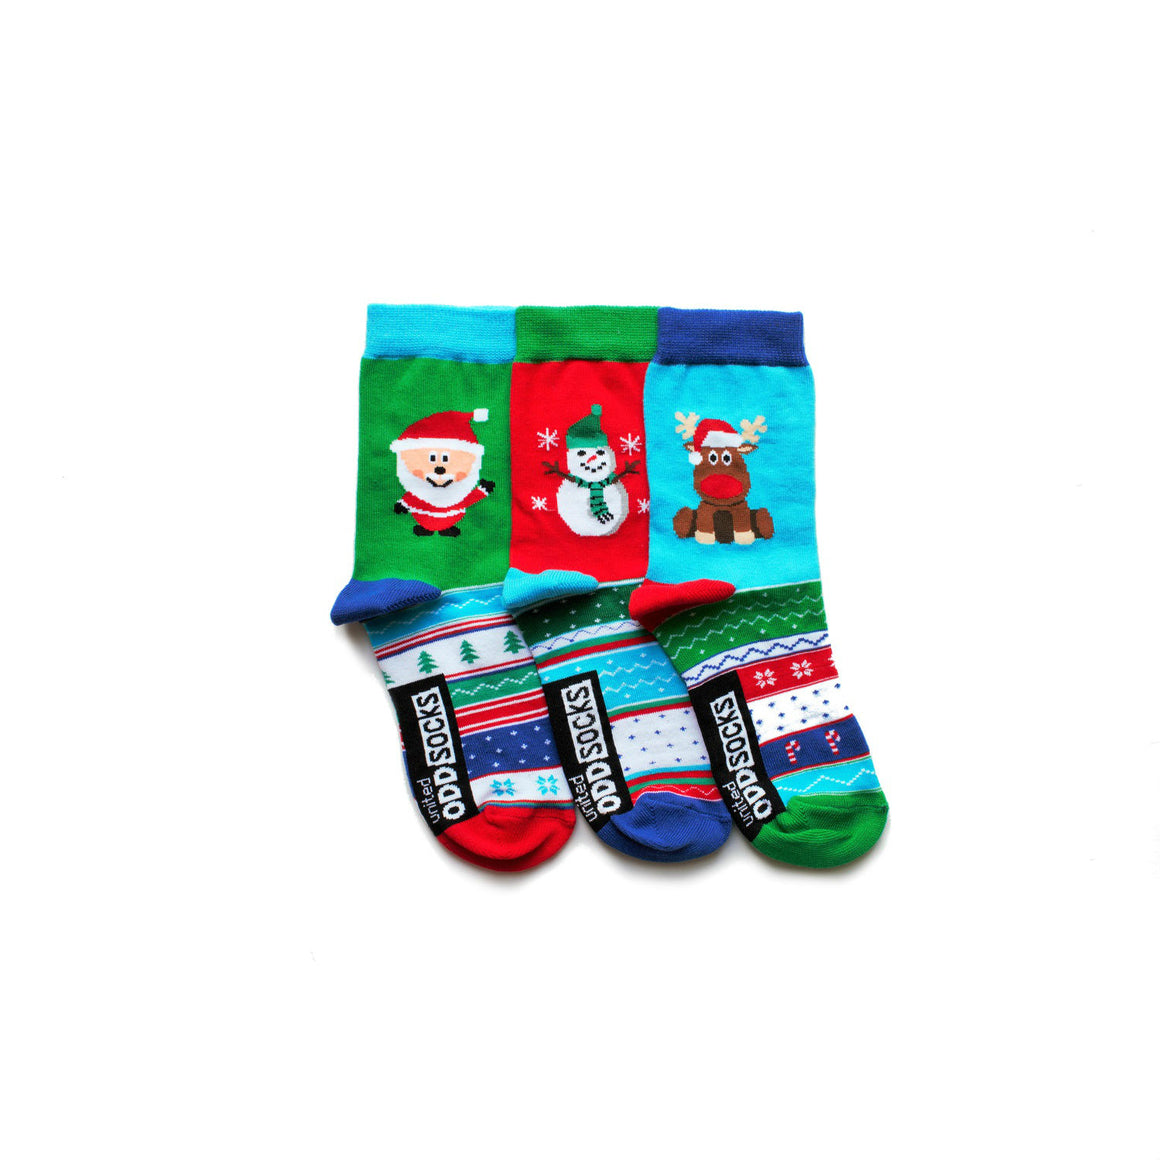 United Odd Socks Snow Christmas Socks Childrens 3 Pack